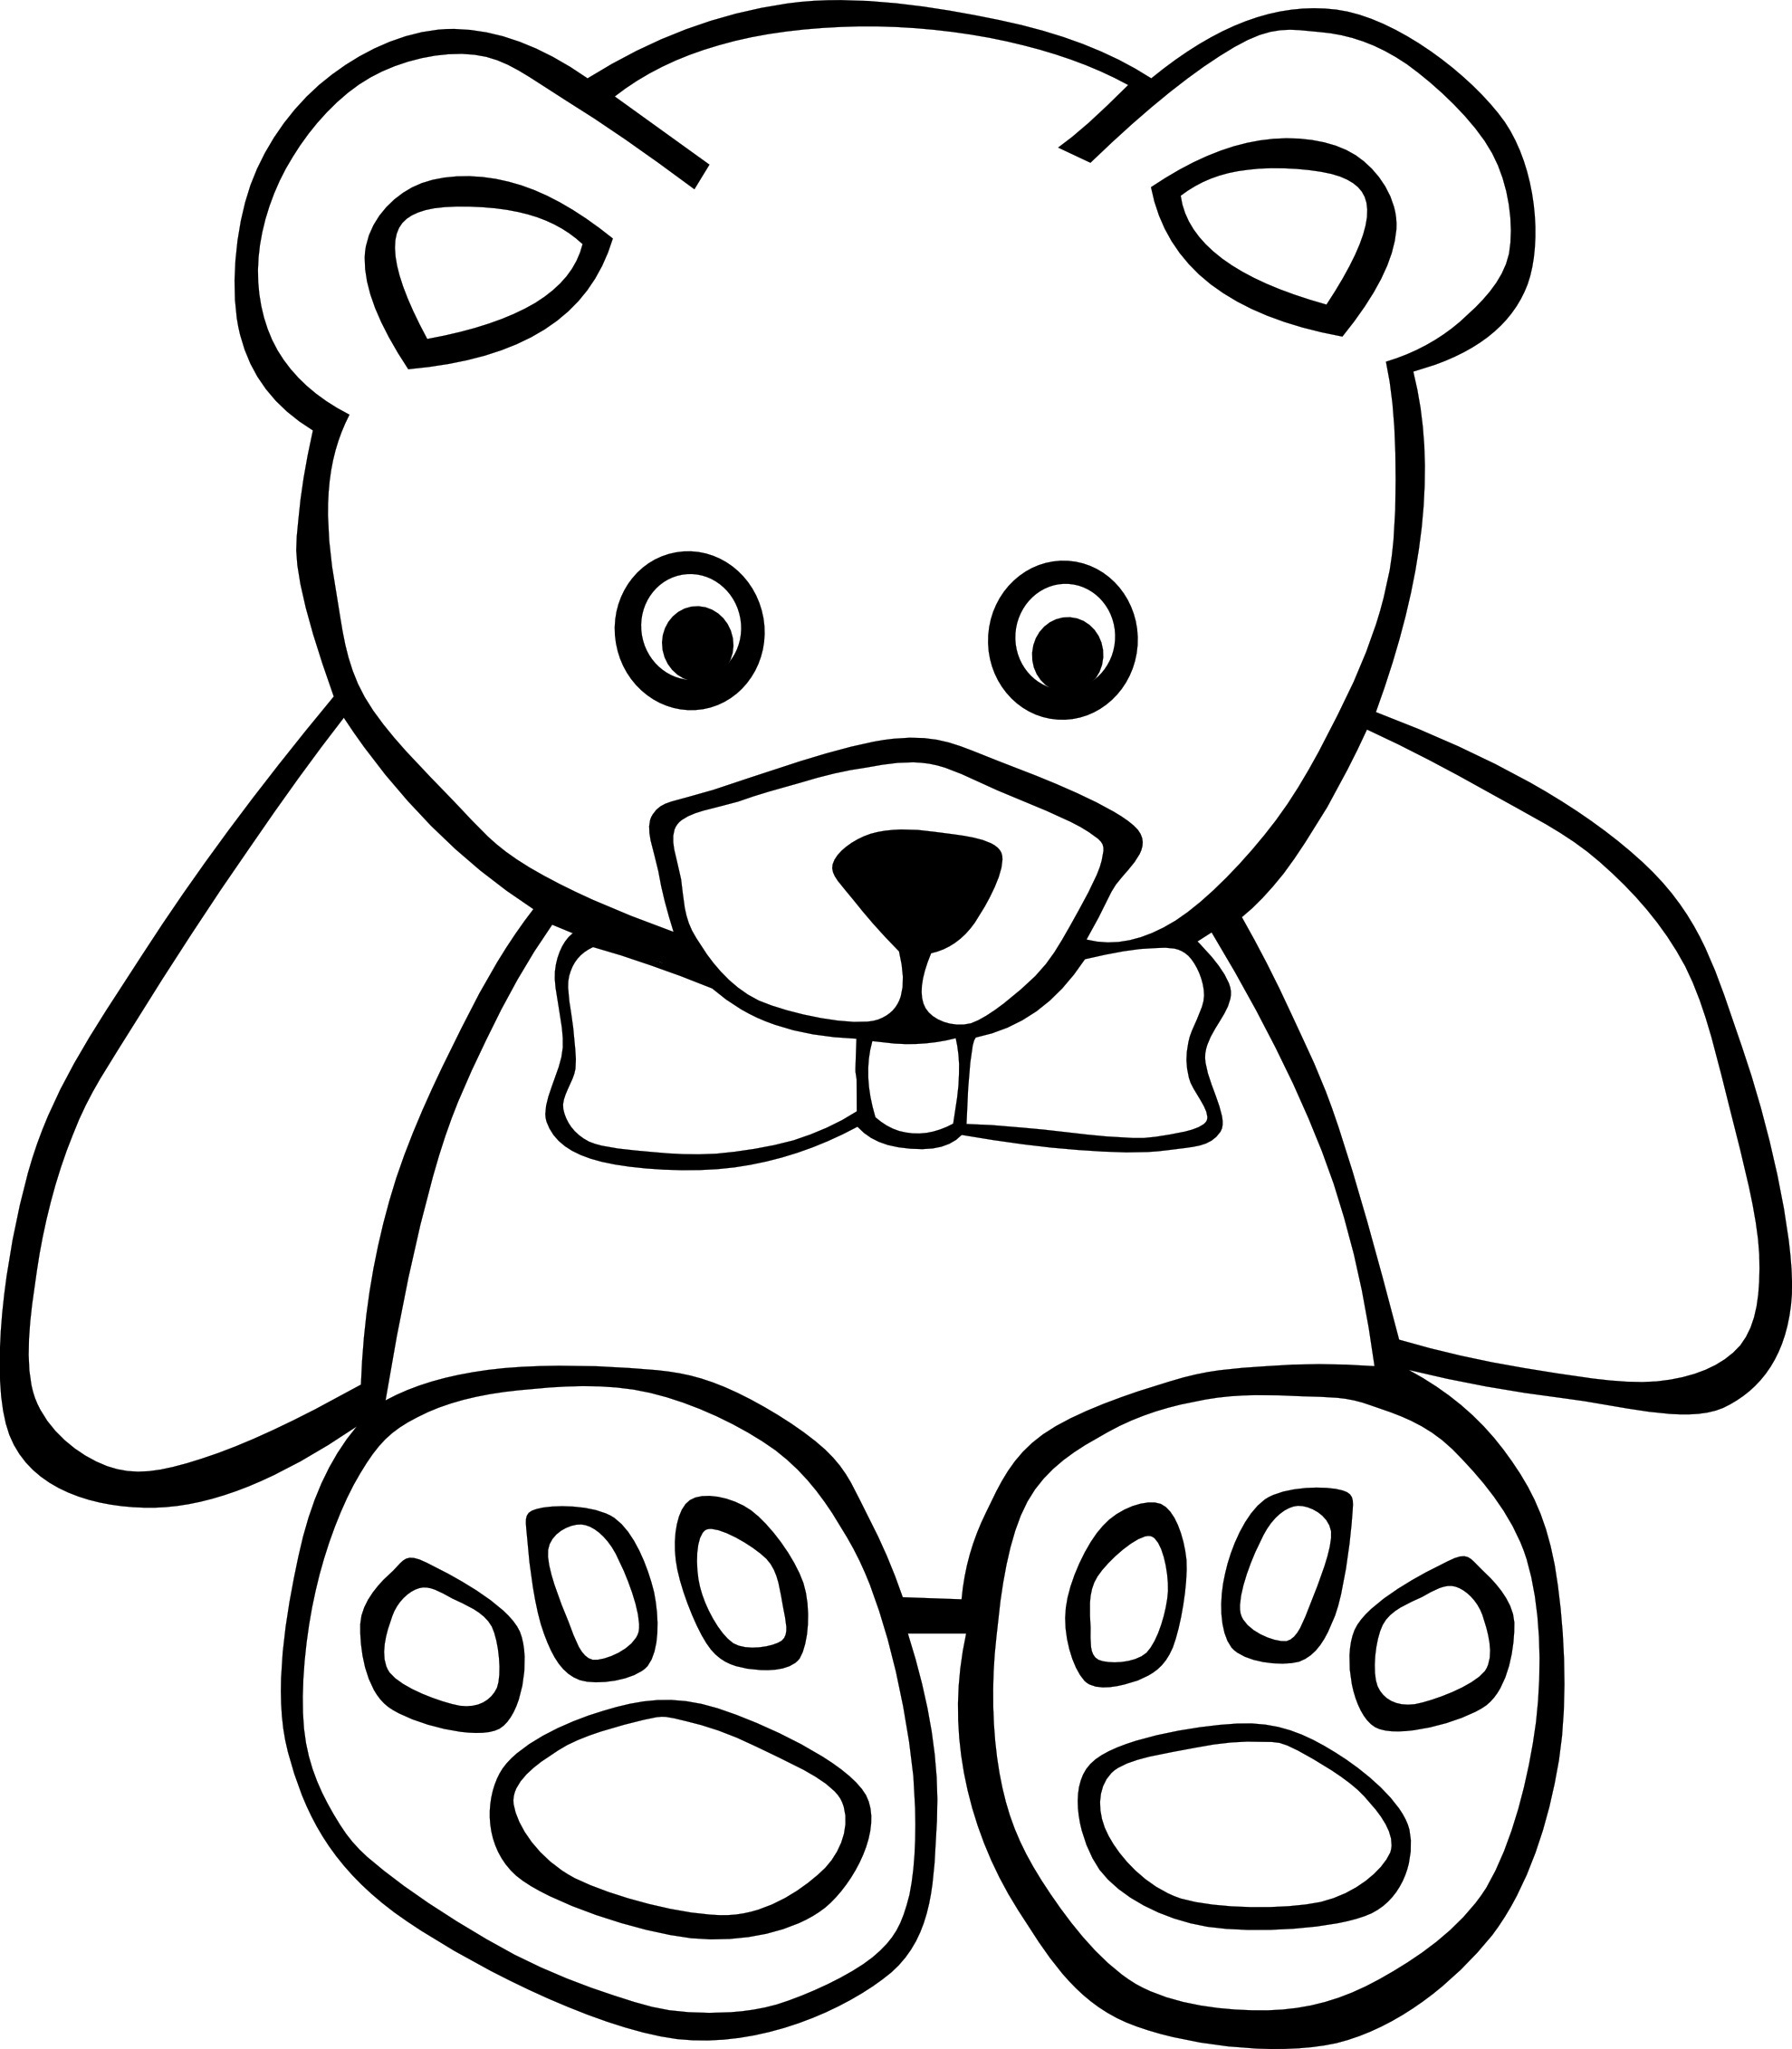 printable coloring pages of teddy bears | Free Printable Teddy Bear Coloring Pages For Kids